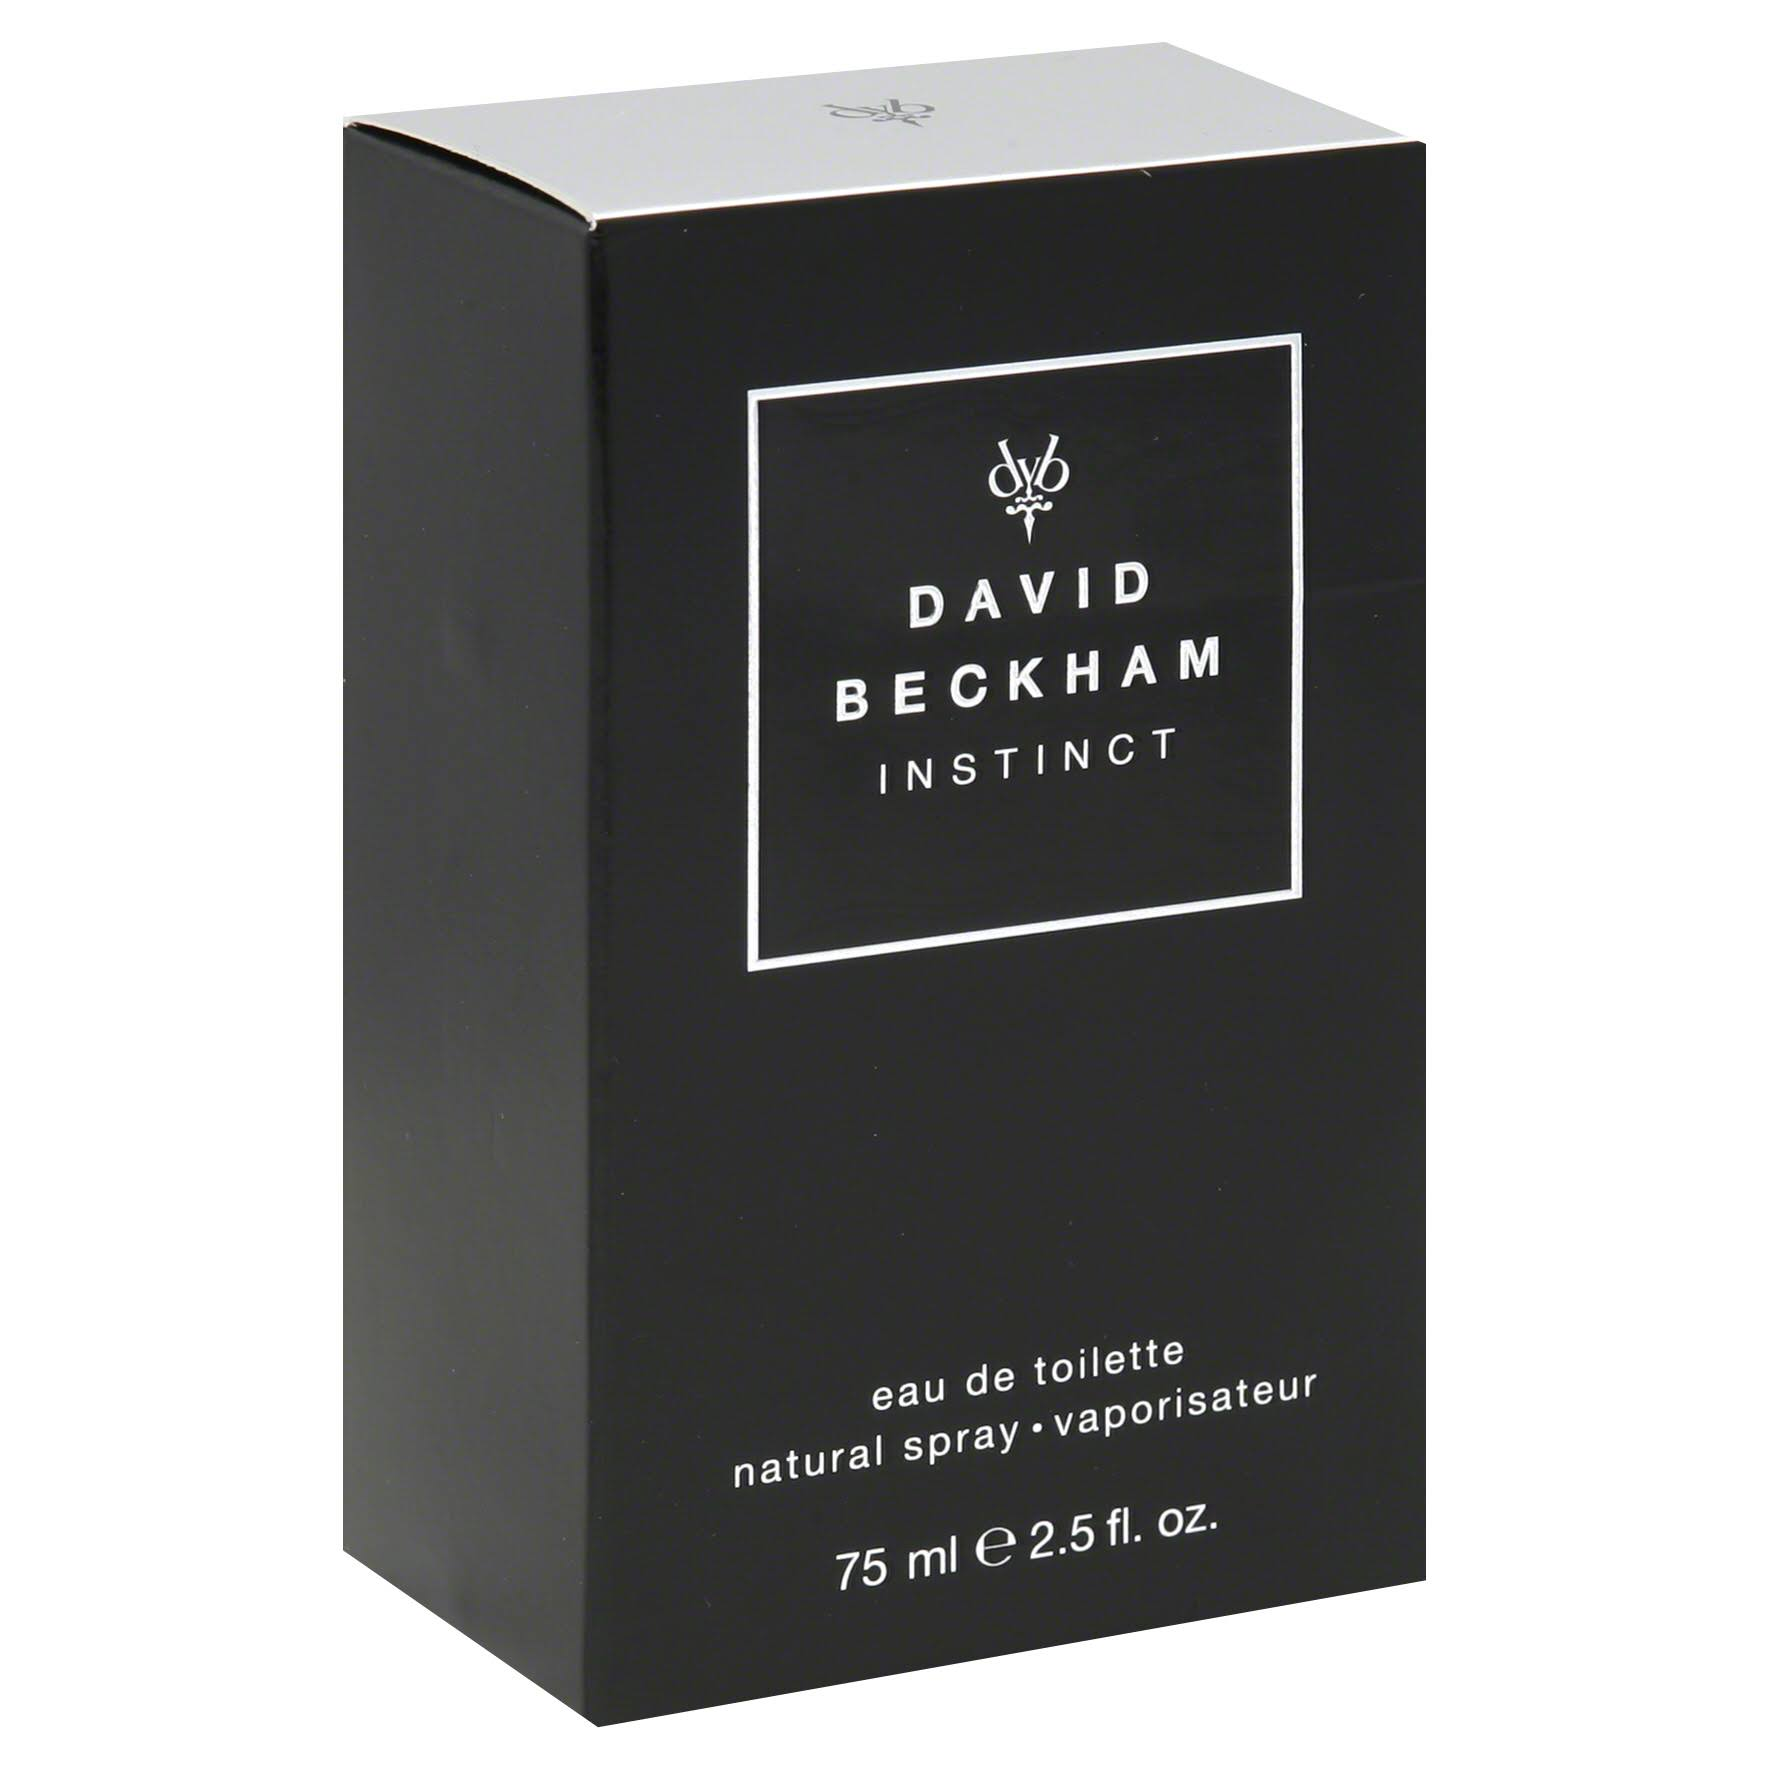 David Beckham Men's Natural Cologne Spray - Instinct, 2.5oz